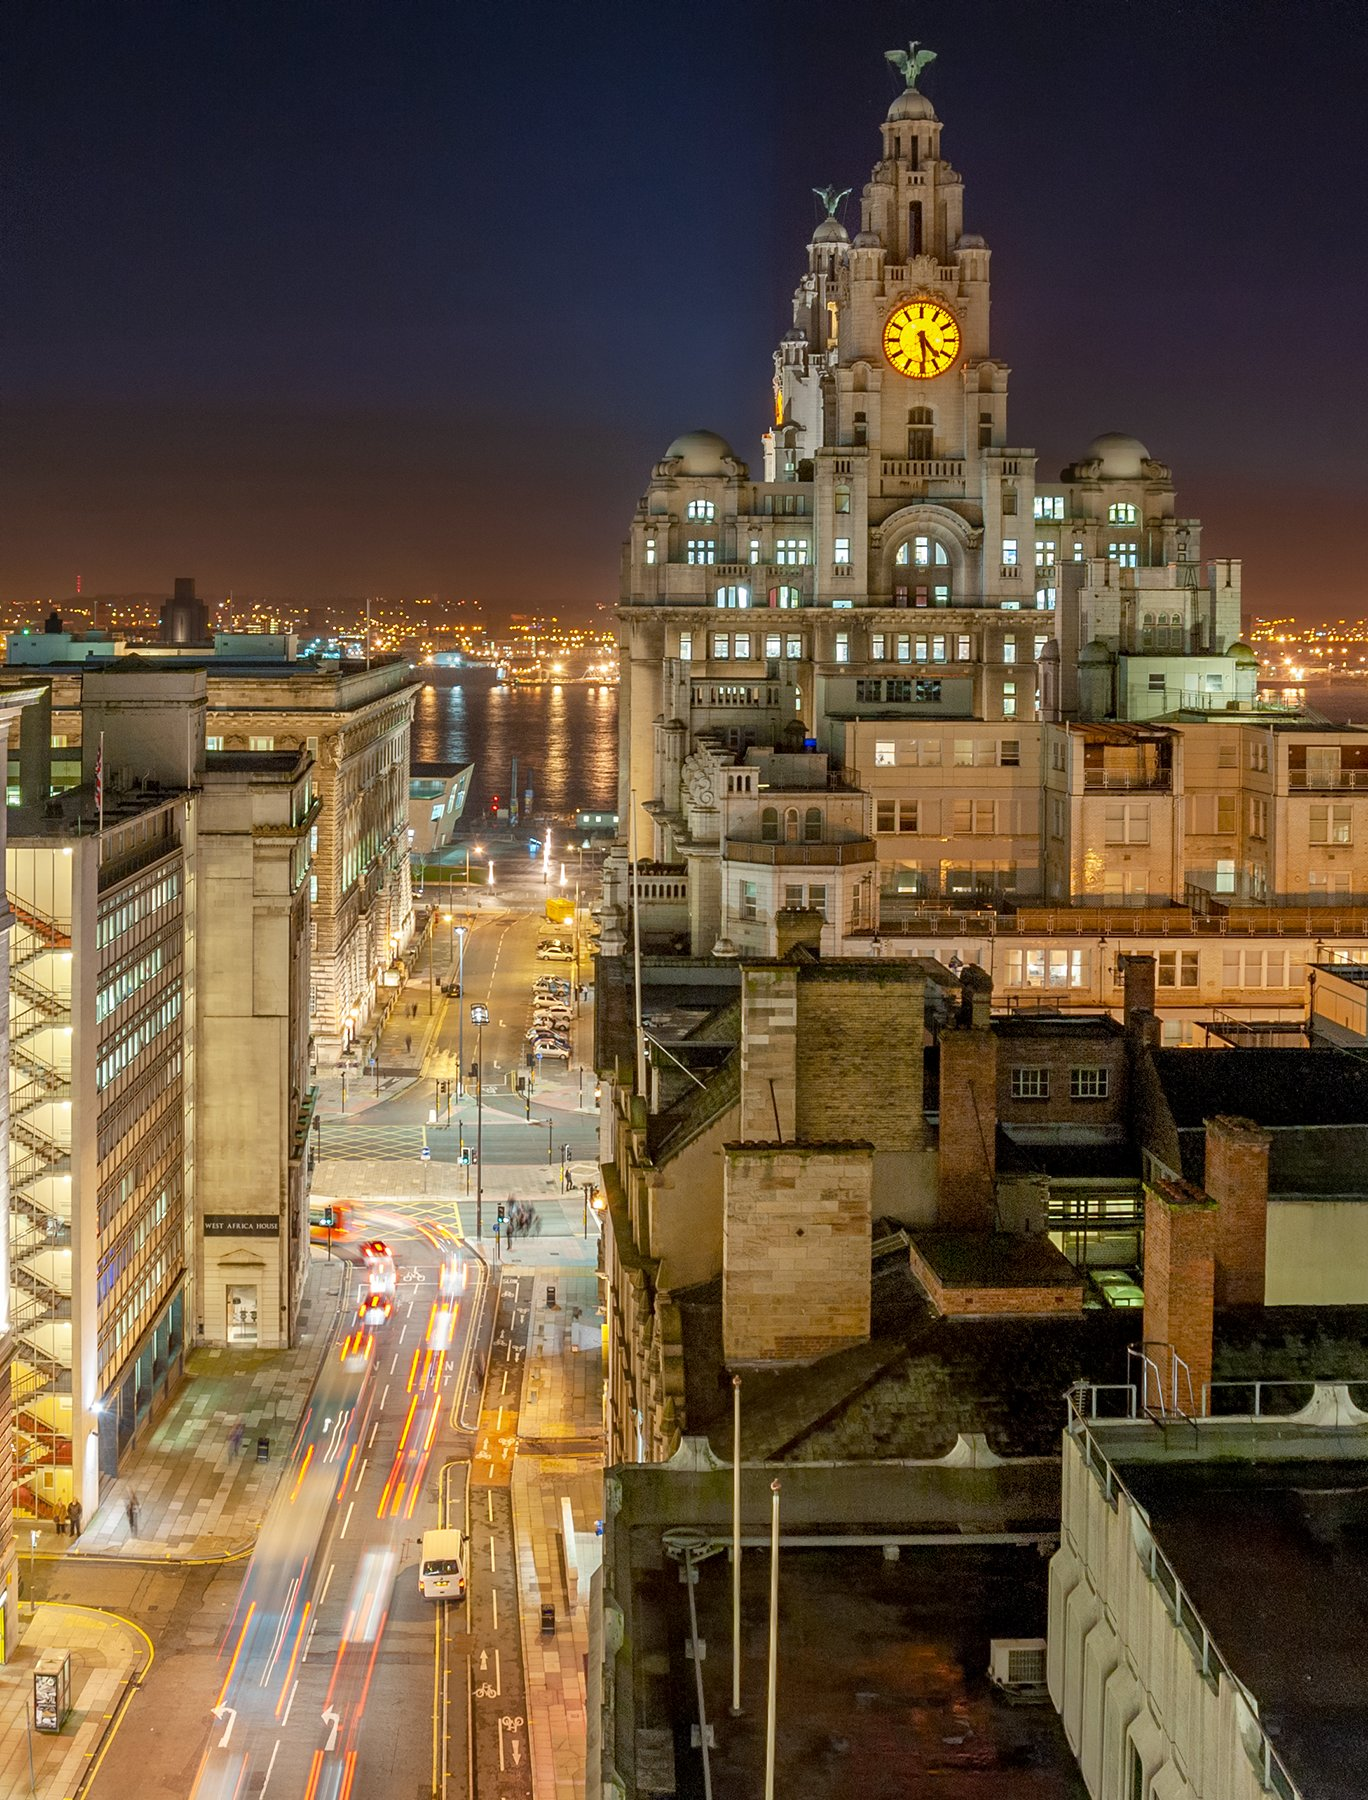 View down Water Street, Liverpool towards the River Mersey and Royal Liver Building.